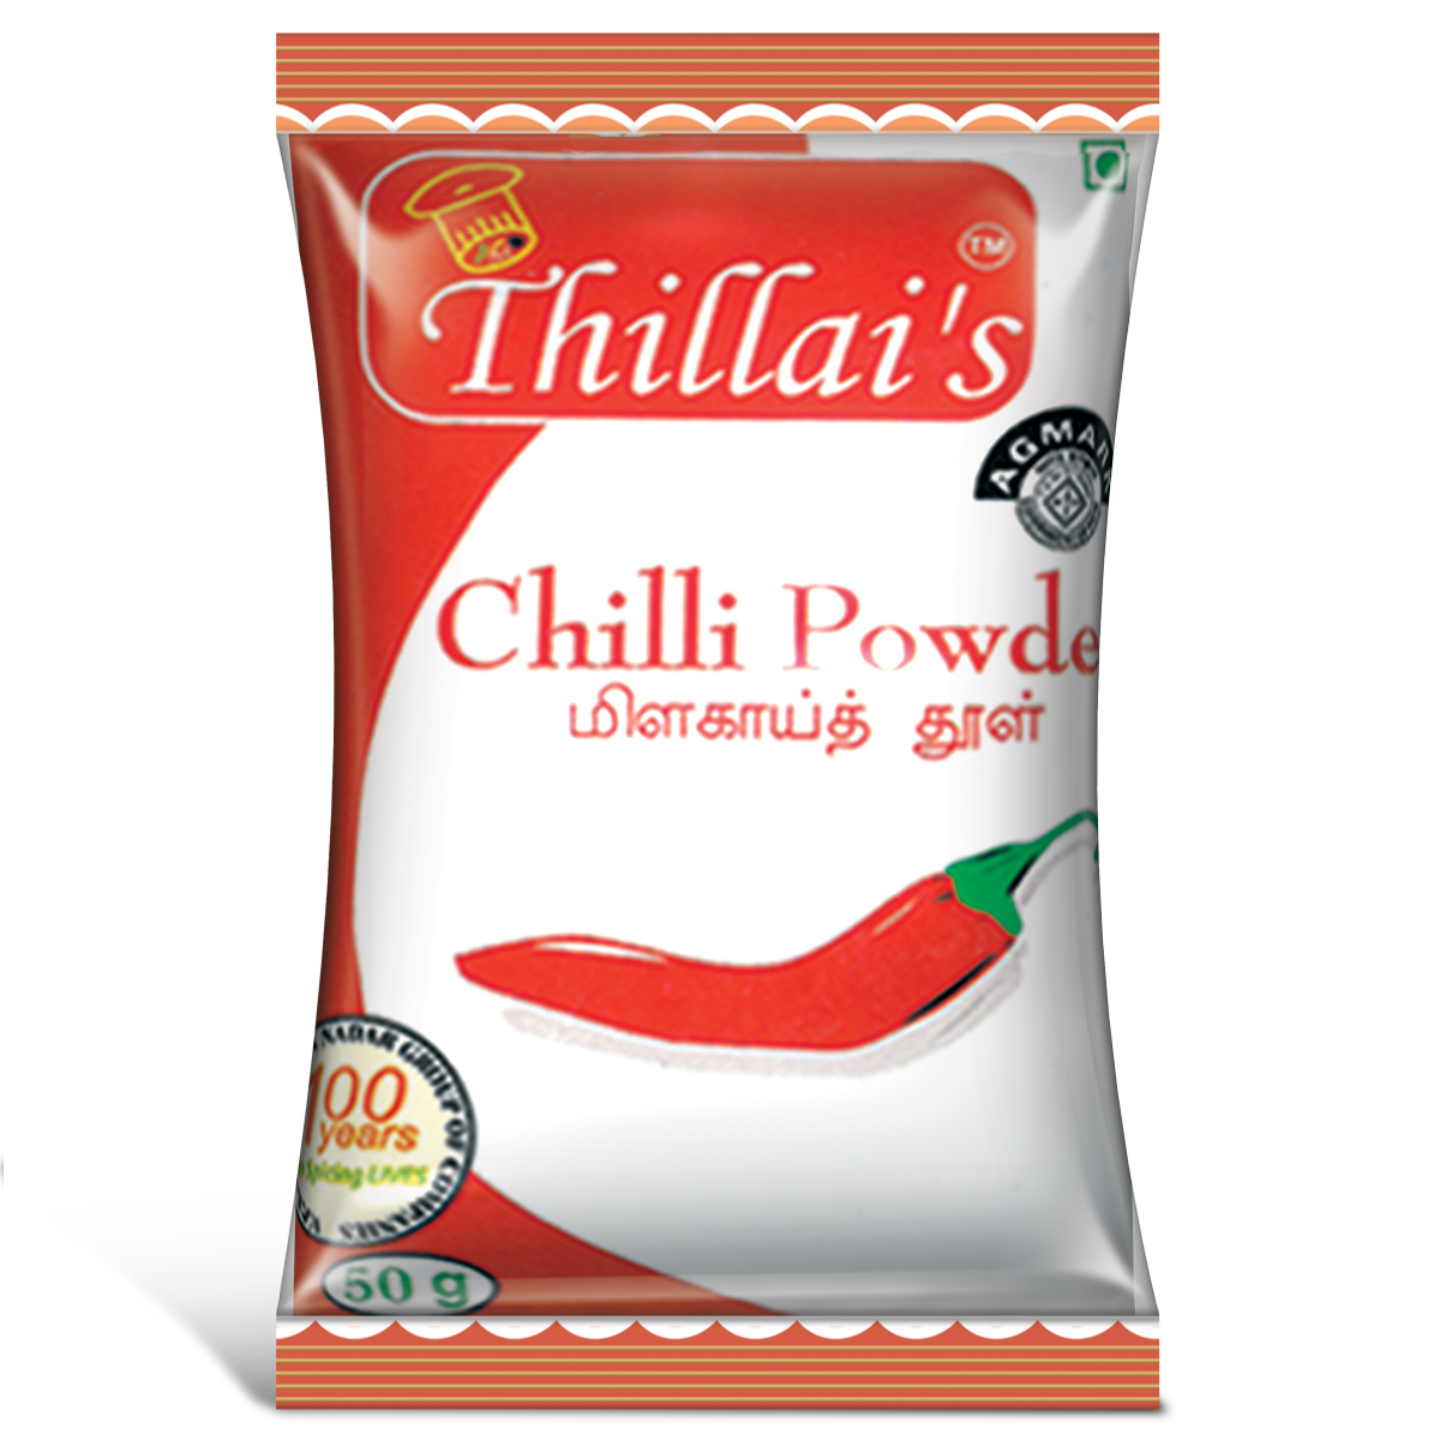 Chiili Powder from Thillais-50g